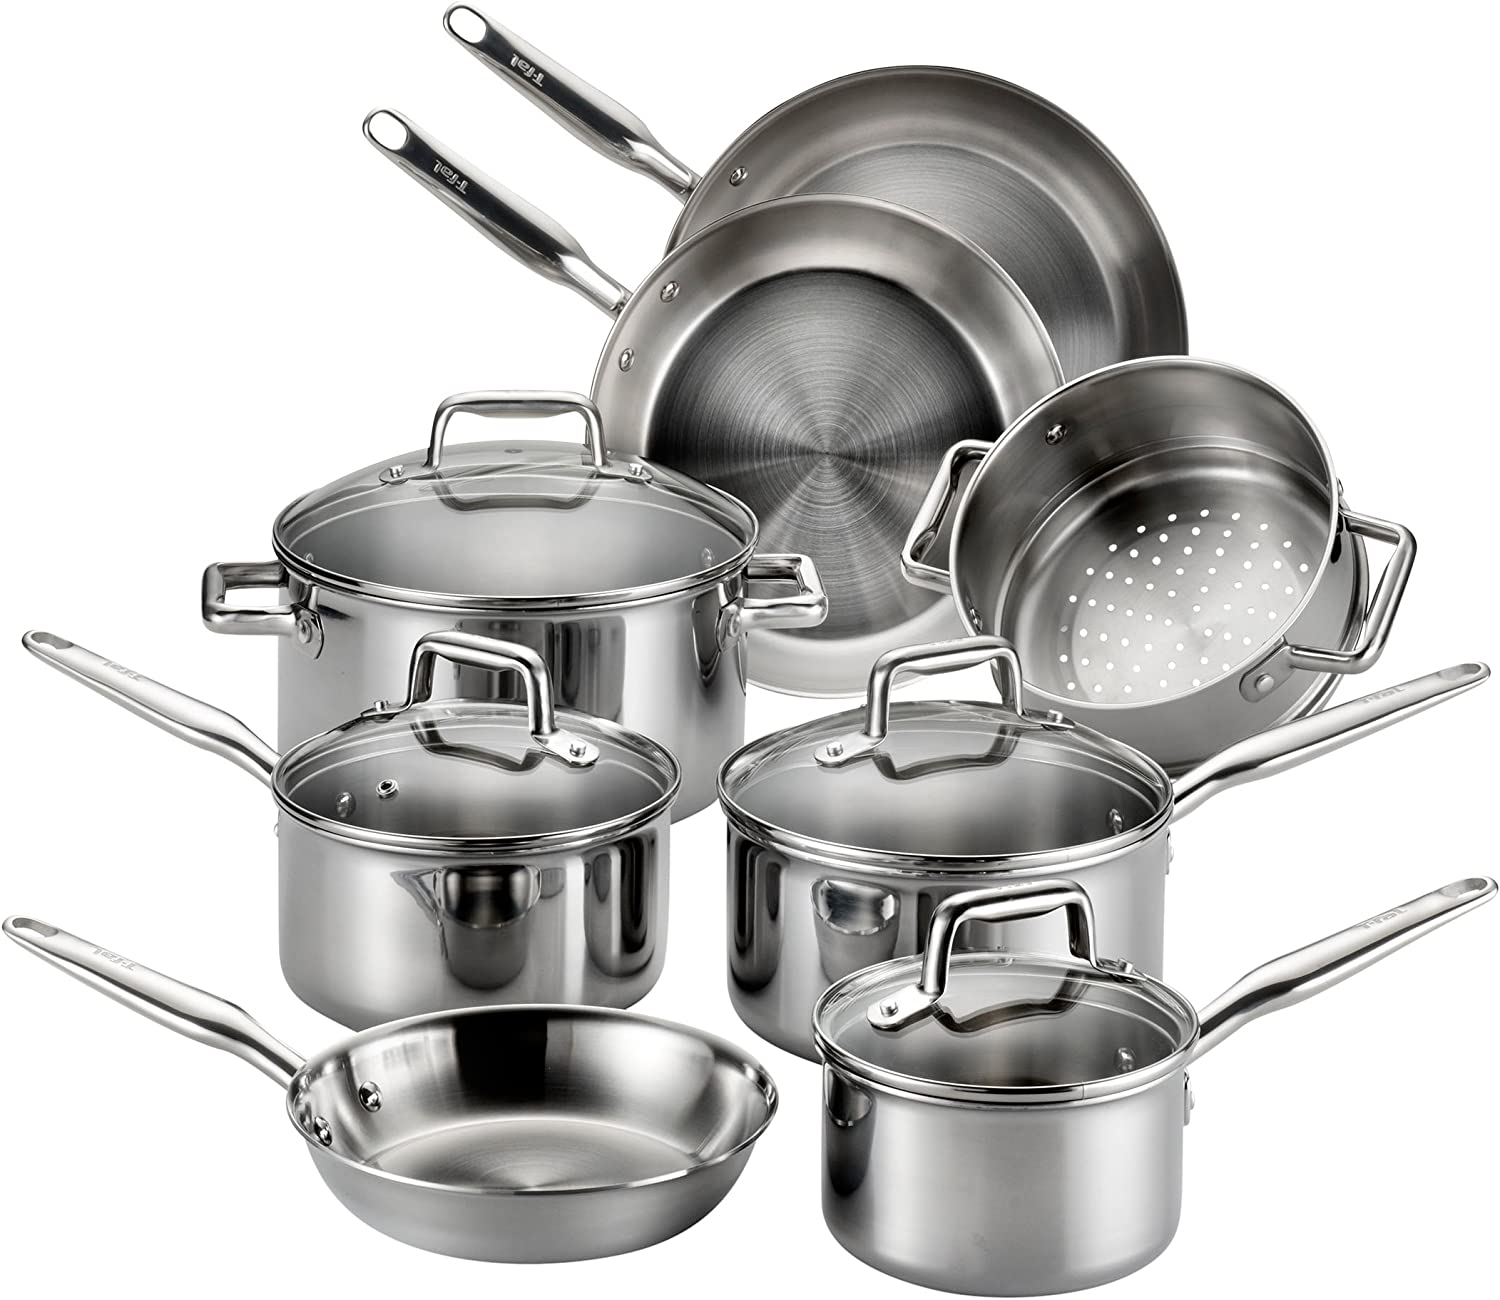 T-fal stainless steel cookware, multi-clad, dishwasher safe, and oven safe cookware set